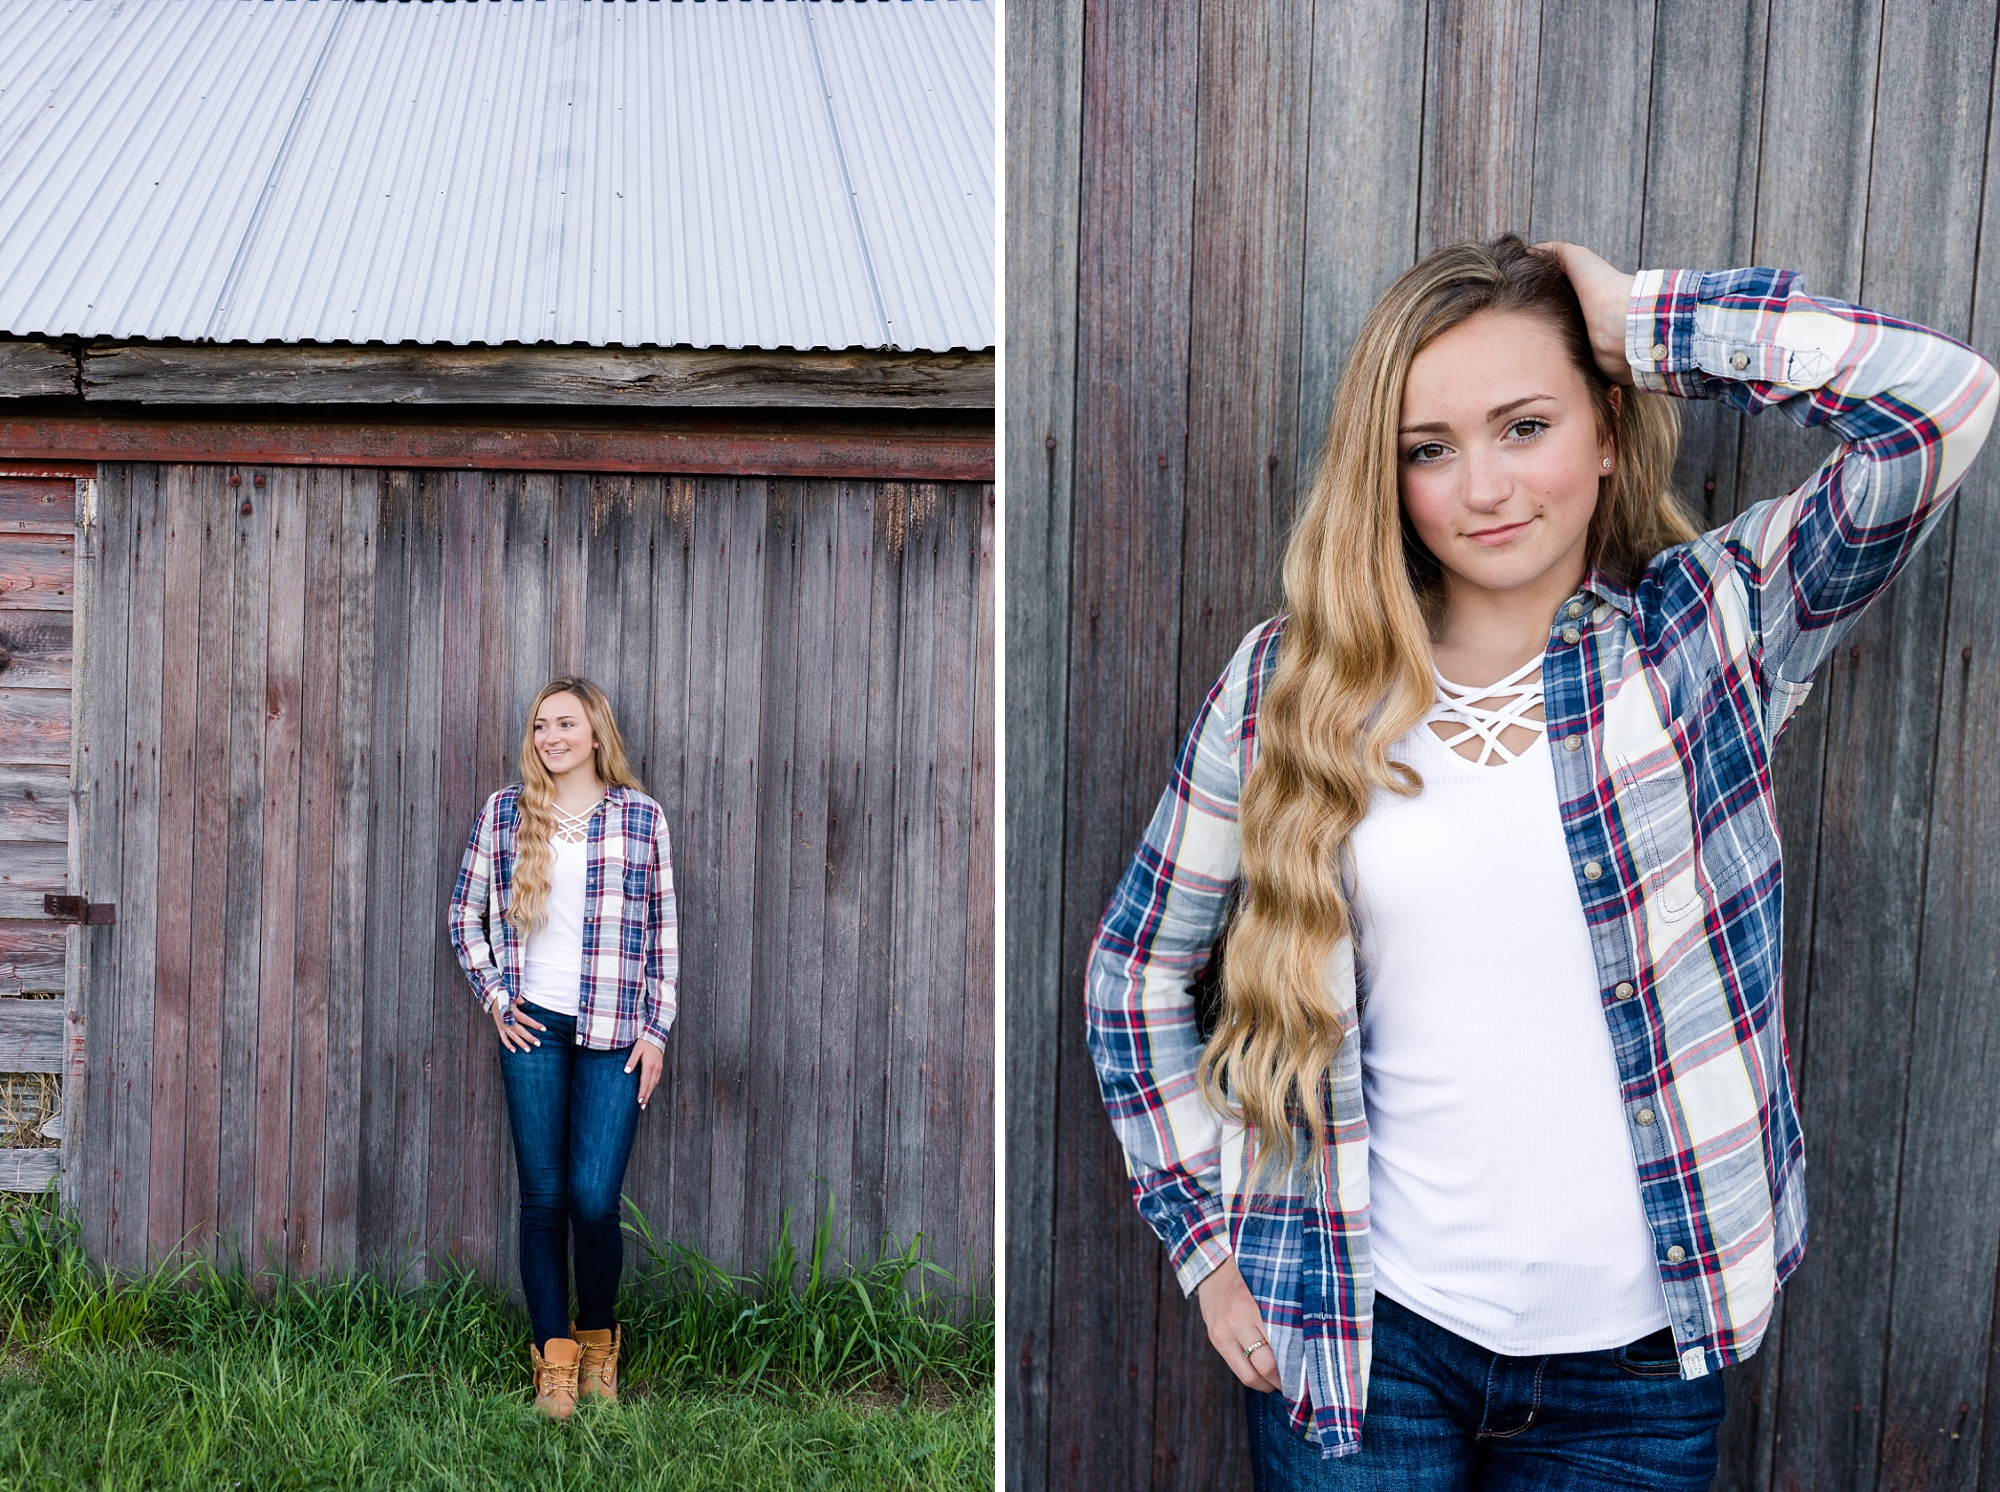 Country Styled High School Senior Pictures on a Farm and Little Cormorant Lake in Minnesota by Amber Langerud with Rustic Barn Wood